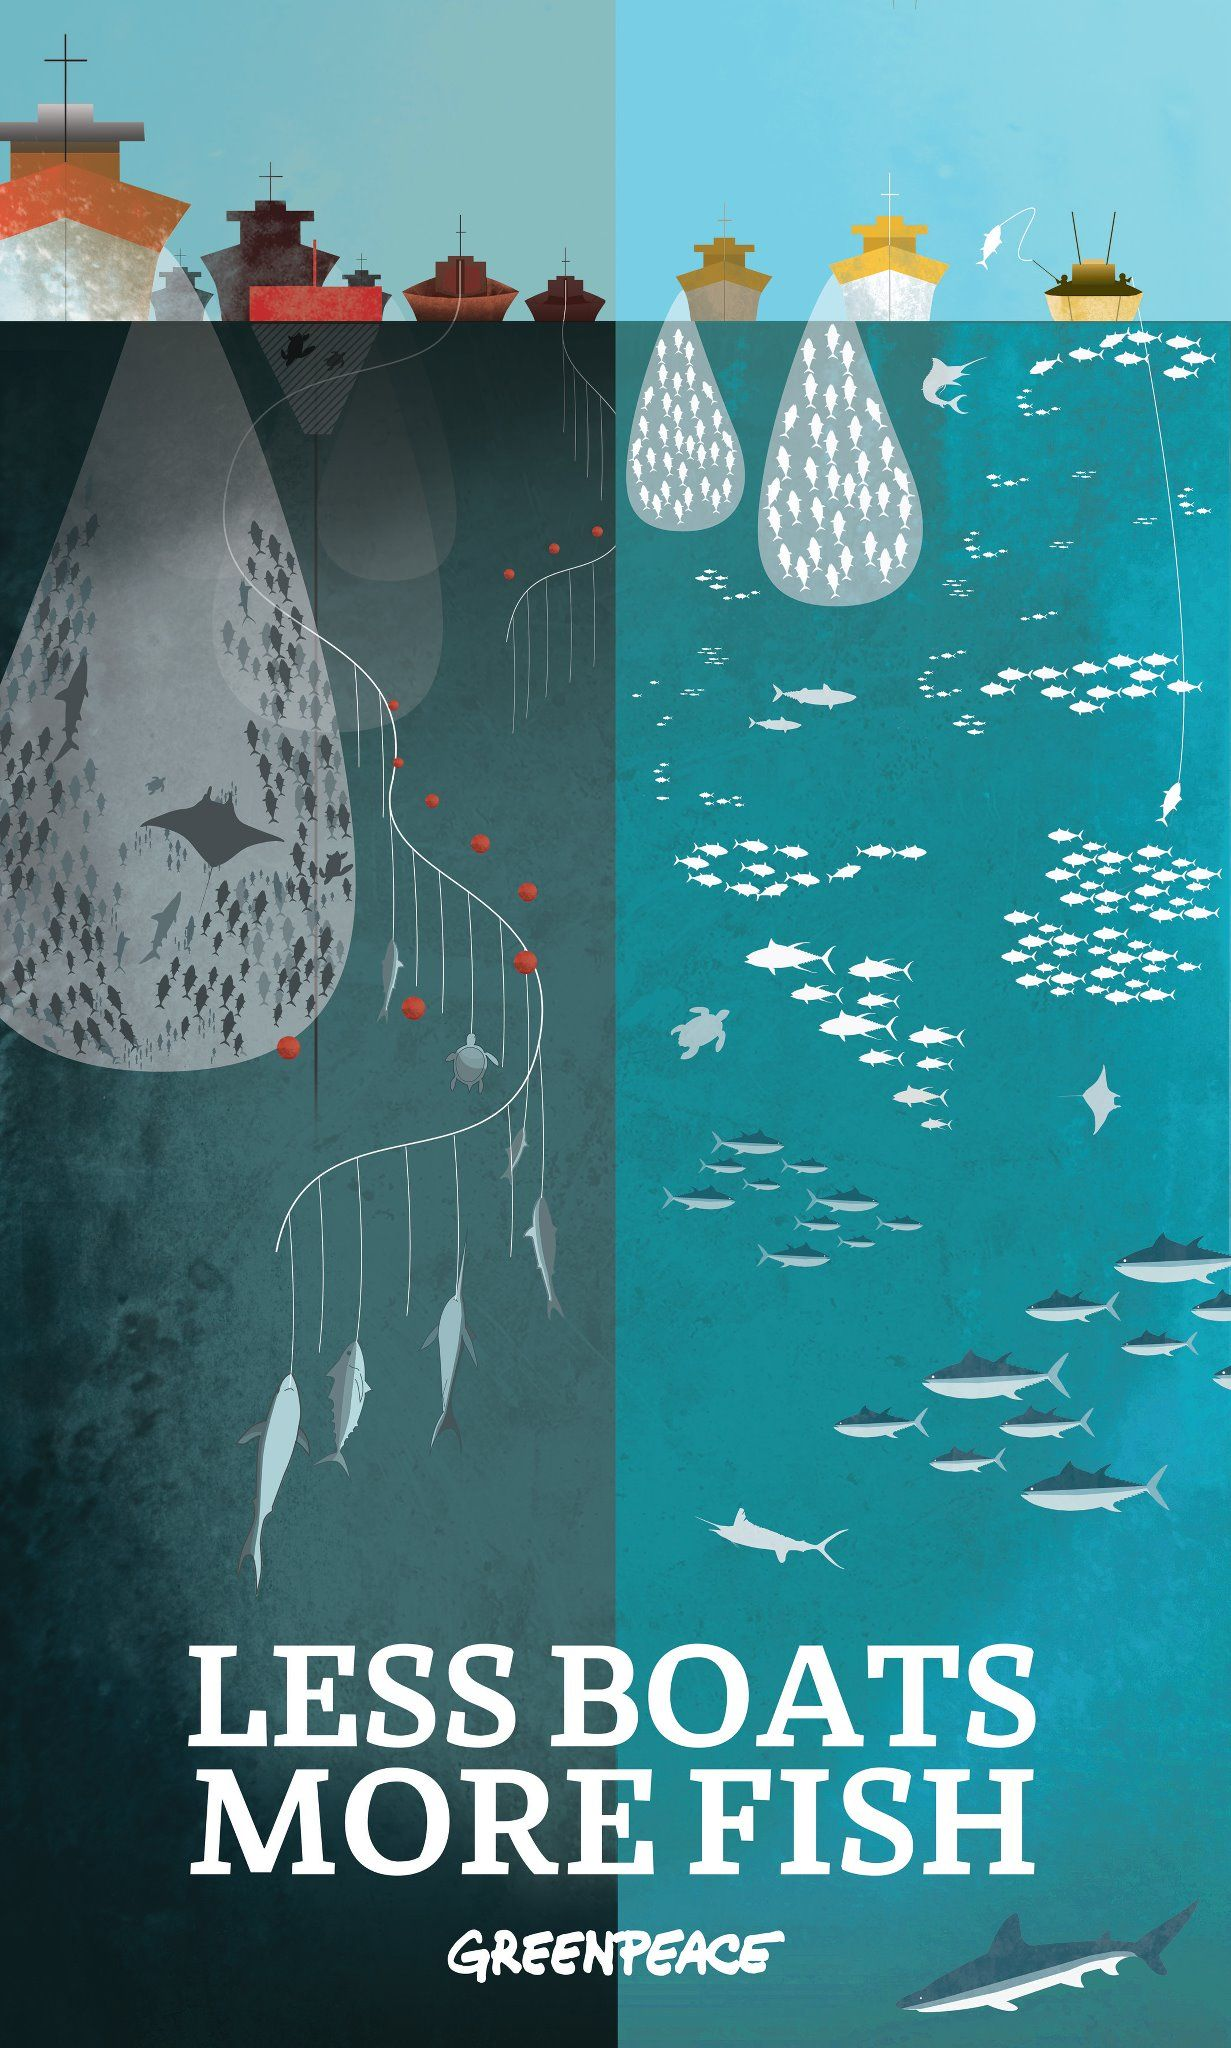 We need fewer boats more fish to save our oceans ocean for Fish and more